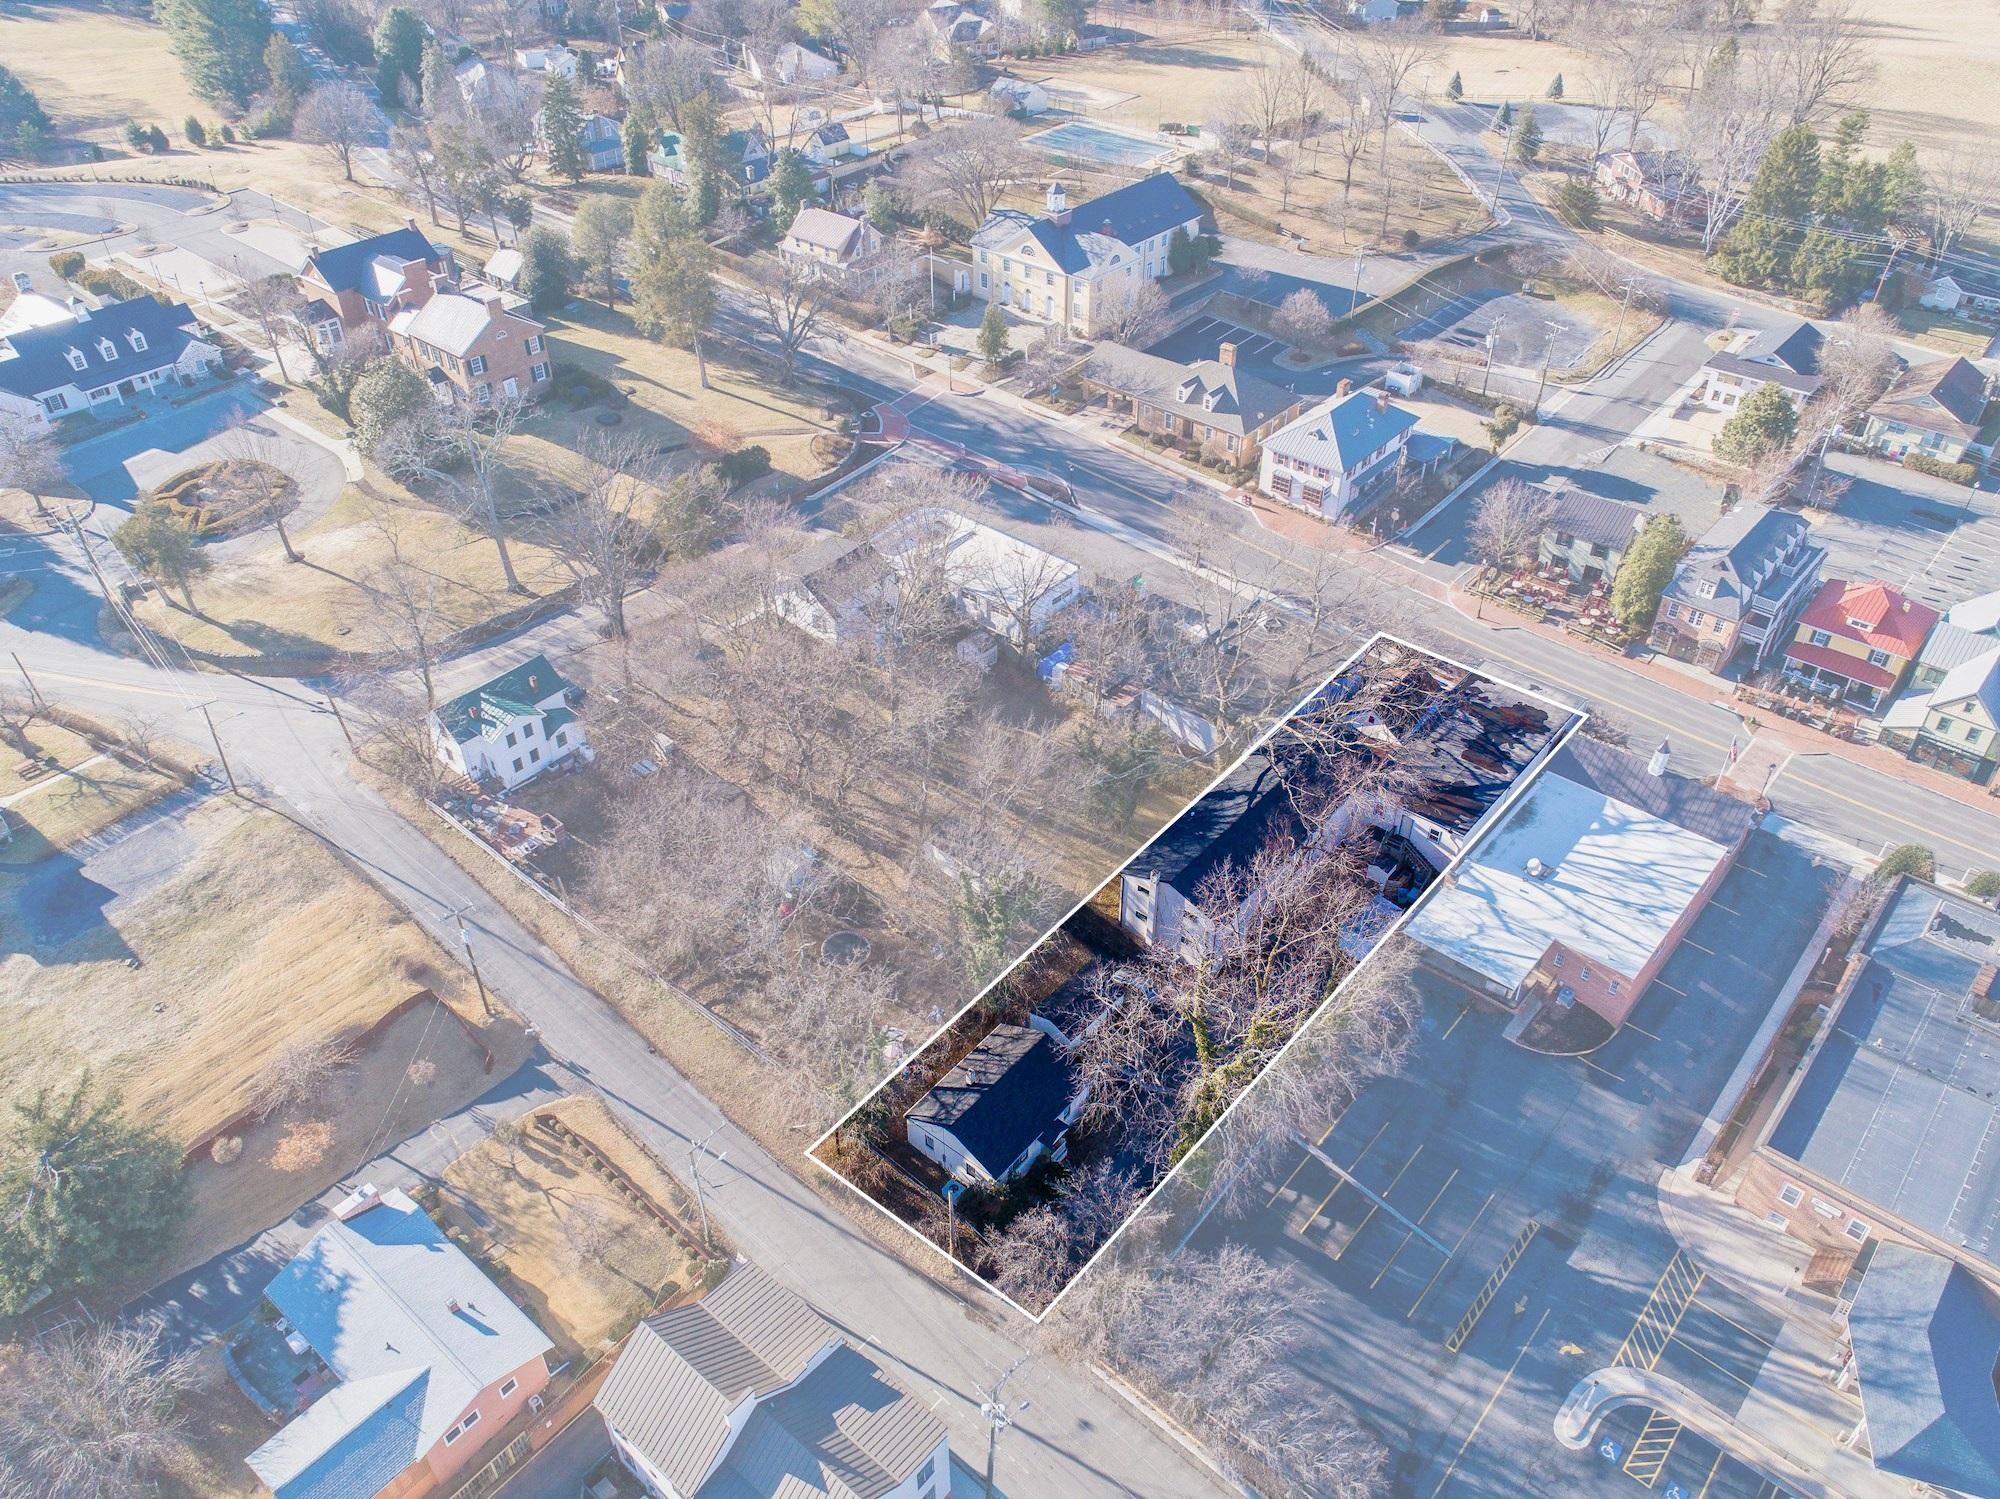 Commercial for Sale at 114 E Federal Street 114 E Federal Street Middleburg, Virginia 20117 United States